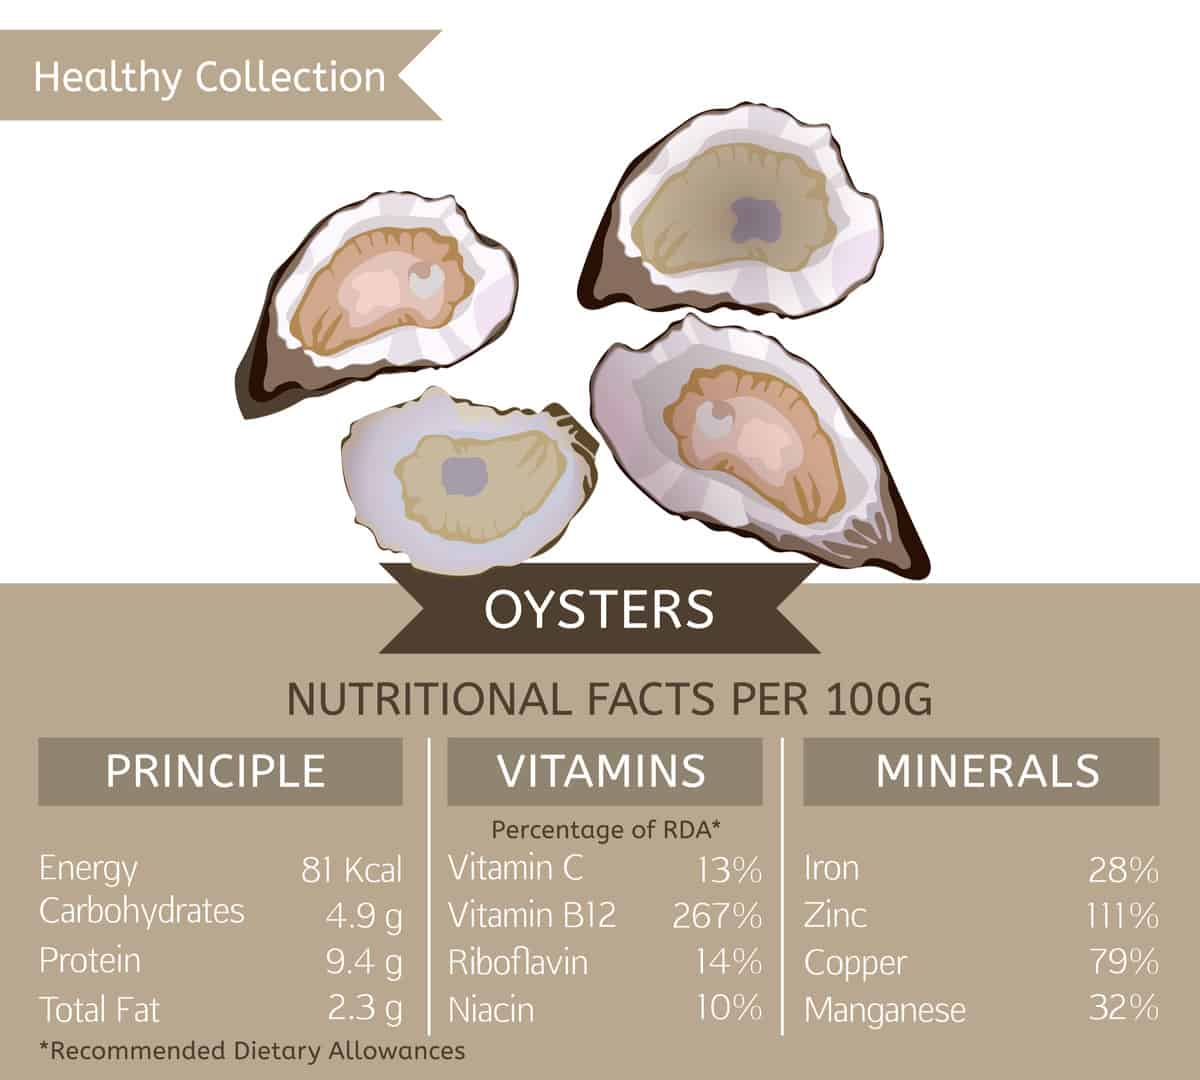 Oyster nutritional facts chart.